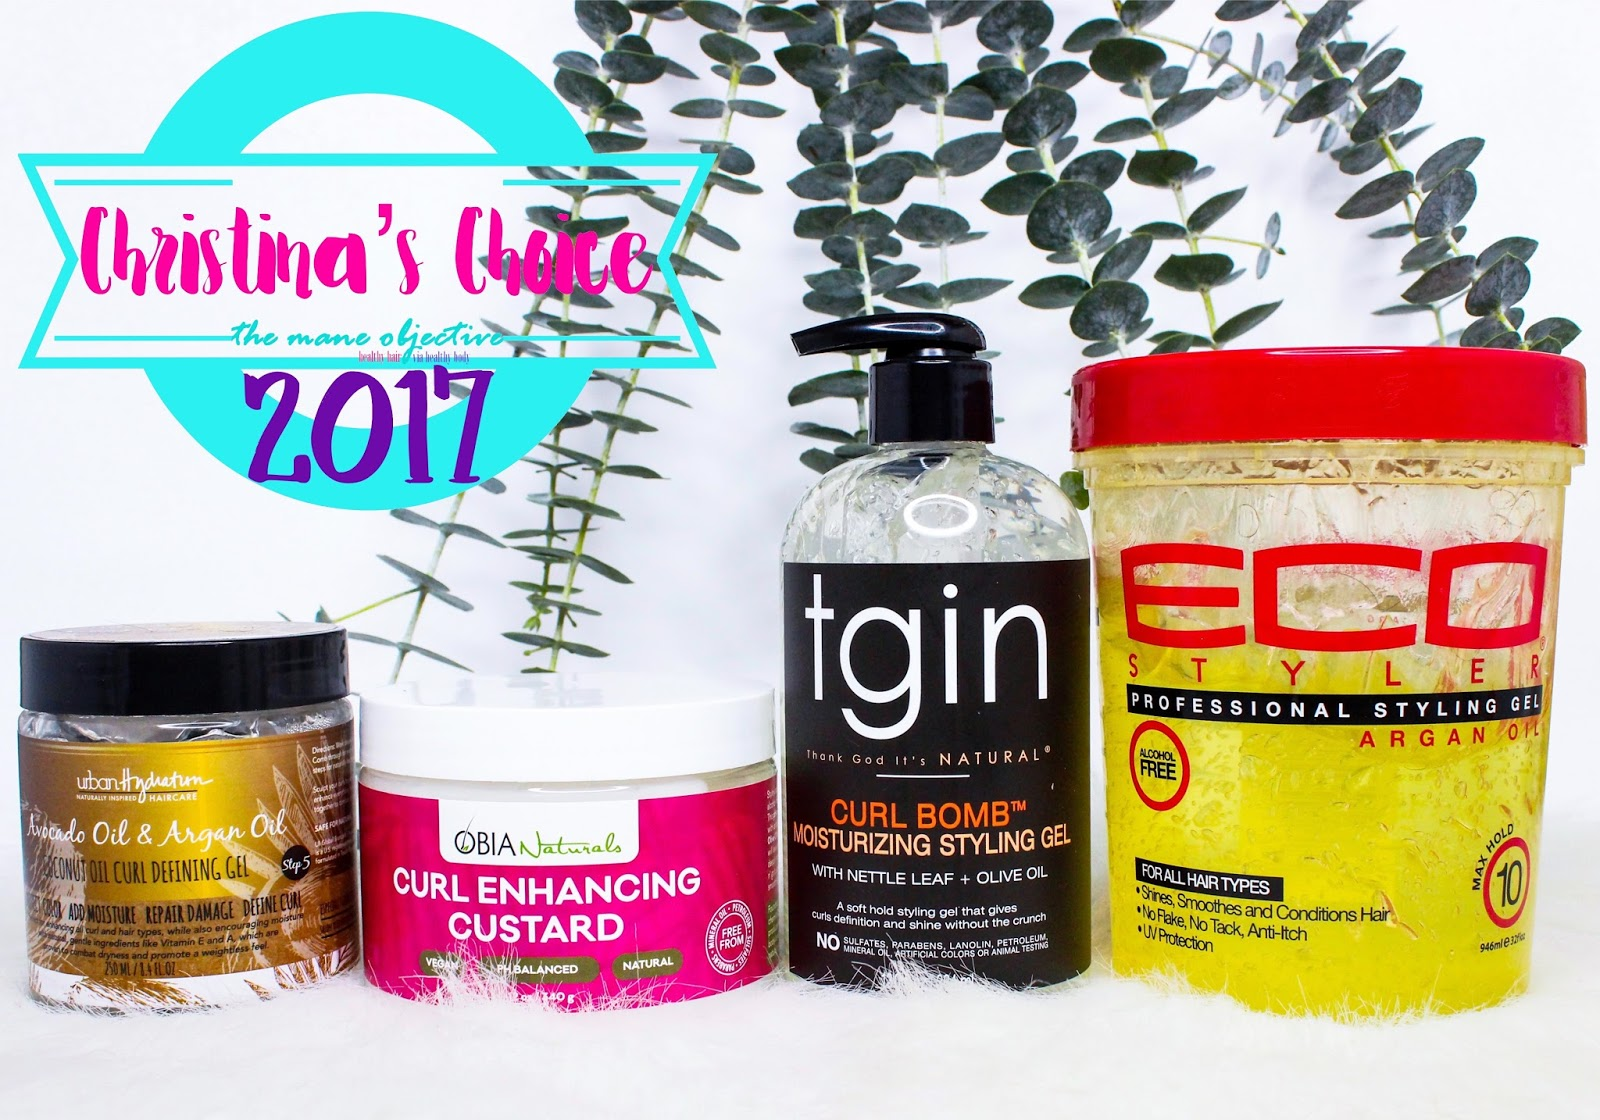 Natural Hair Styling Gel: The Mane Objective: Christina's Choice 2017: Best Curl